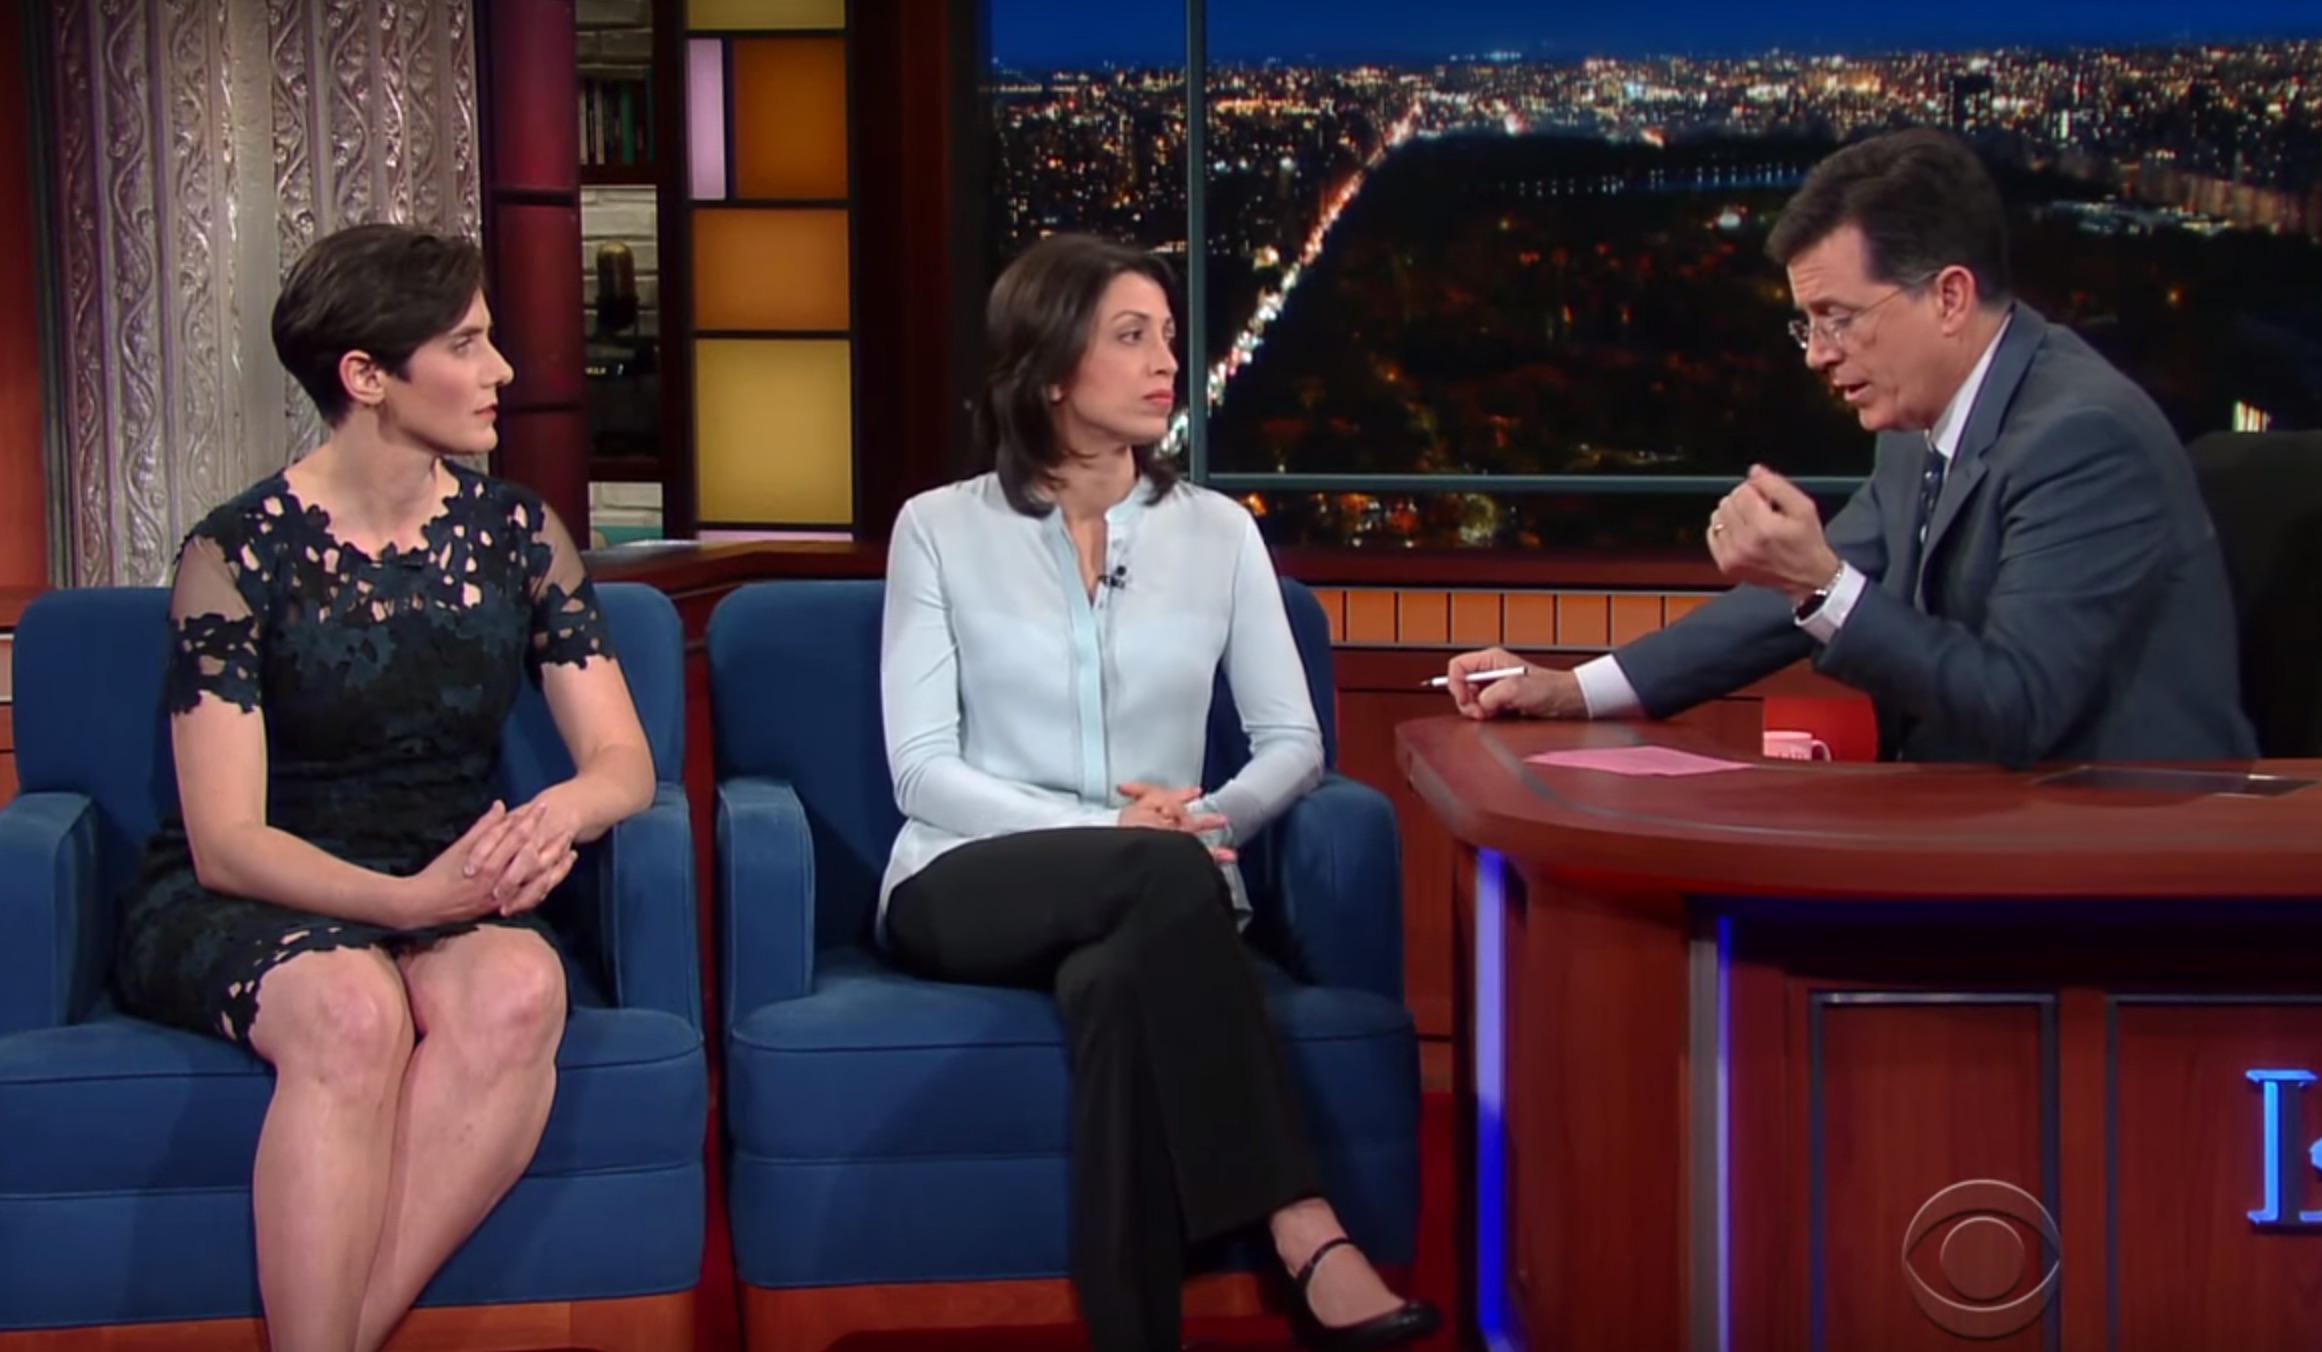 Stephen Colbert spoke to the women behind 'Making A Murderer' and we learned so much